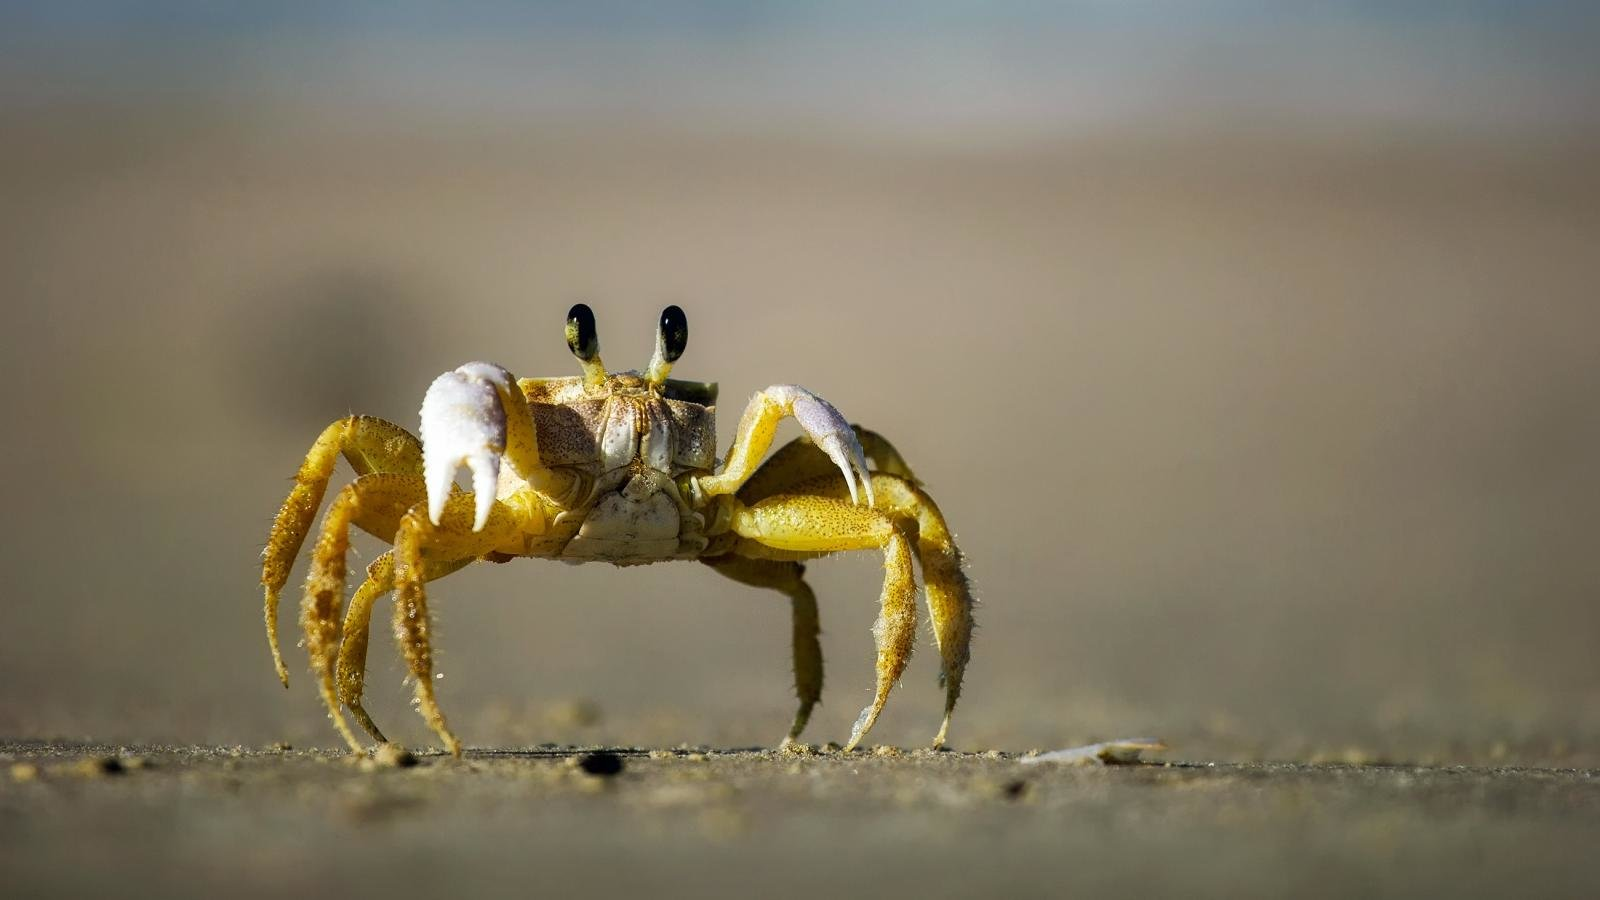 Download hd 1600x900 Crab PC wallpaper ID:294298 for free